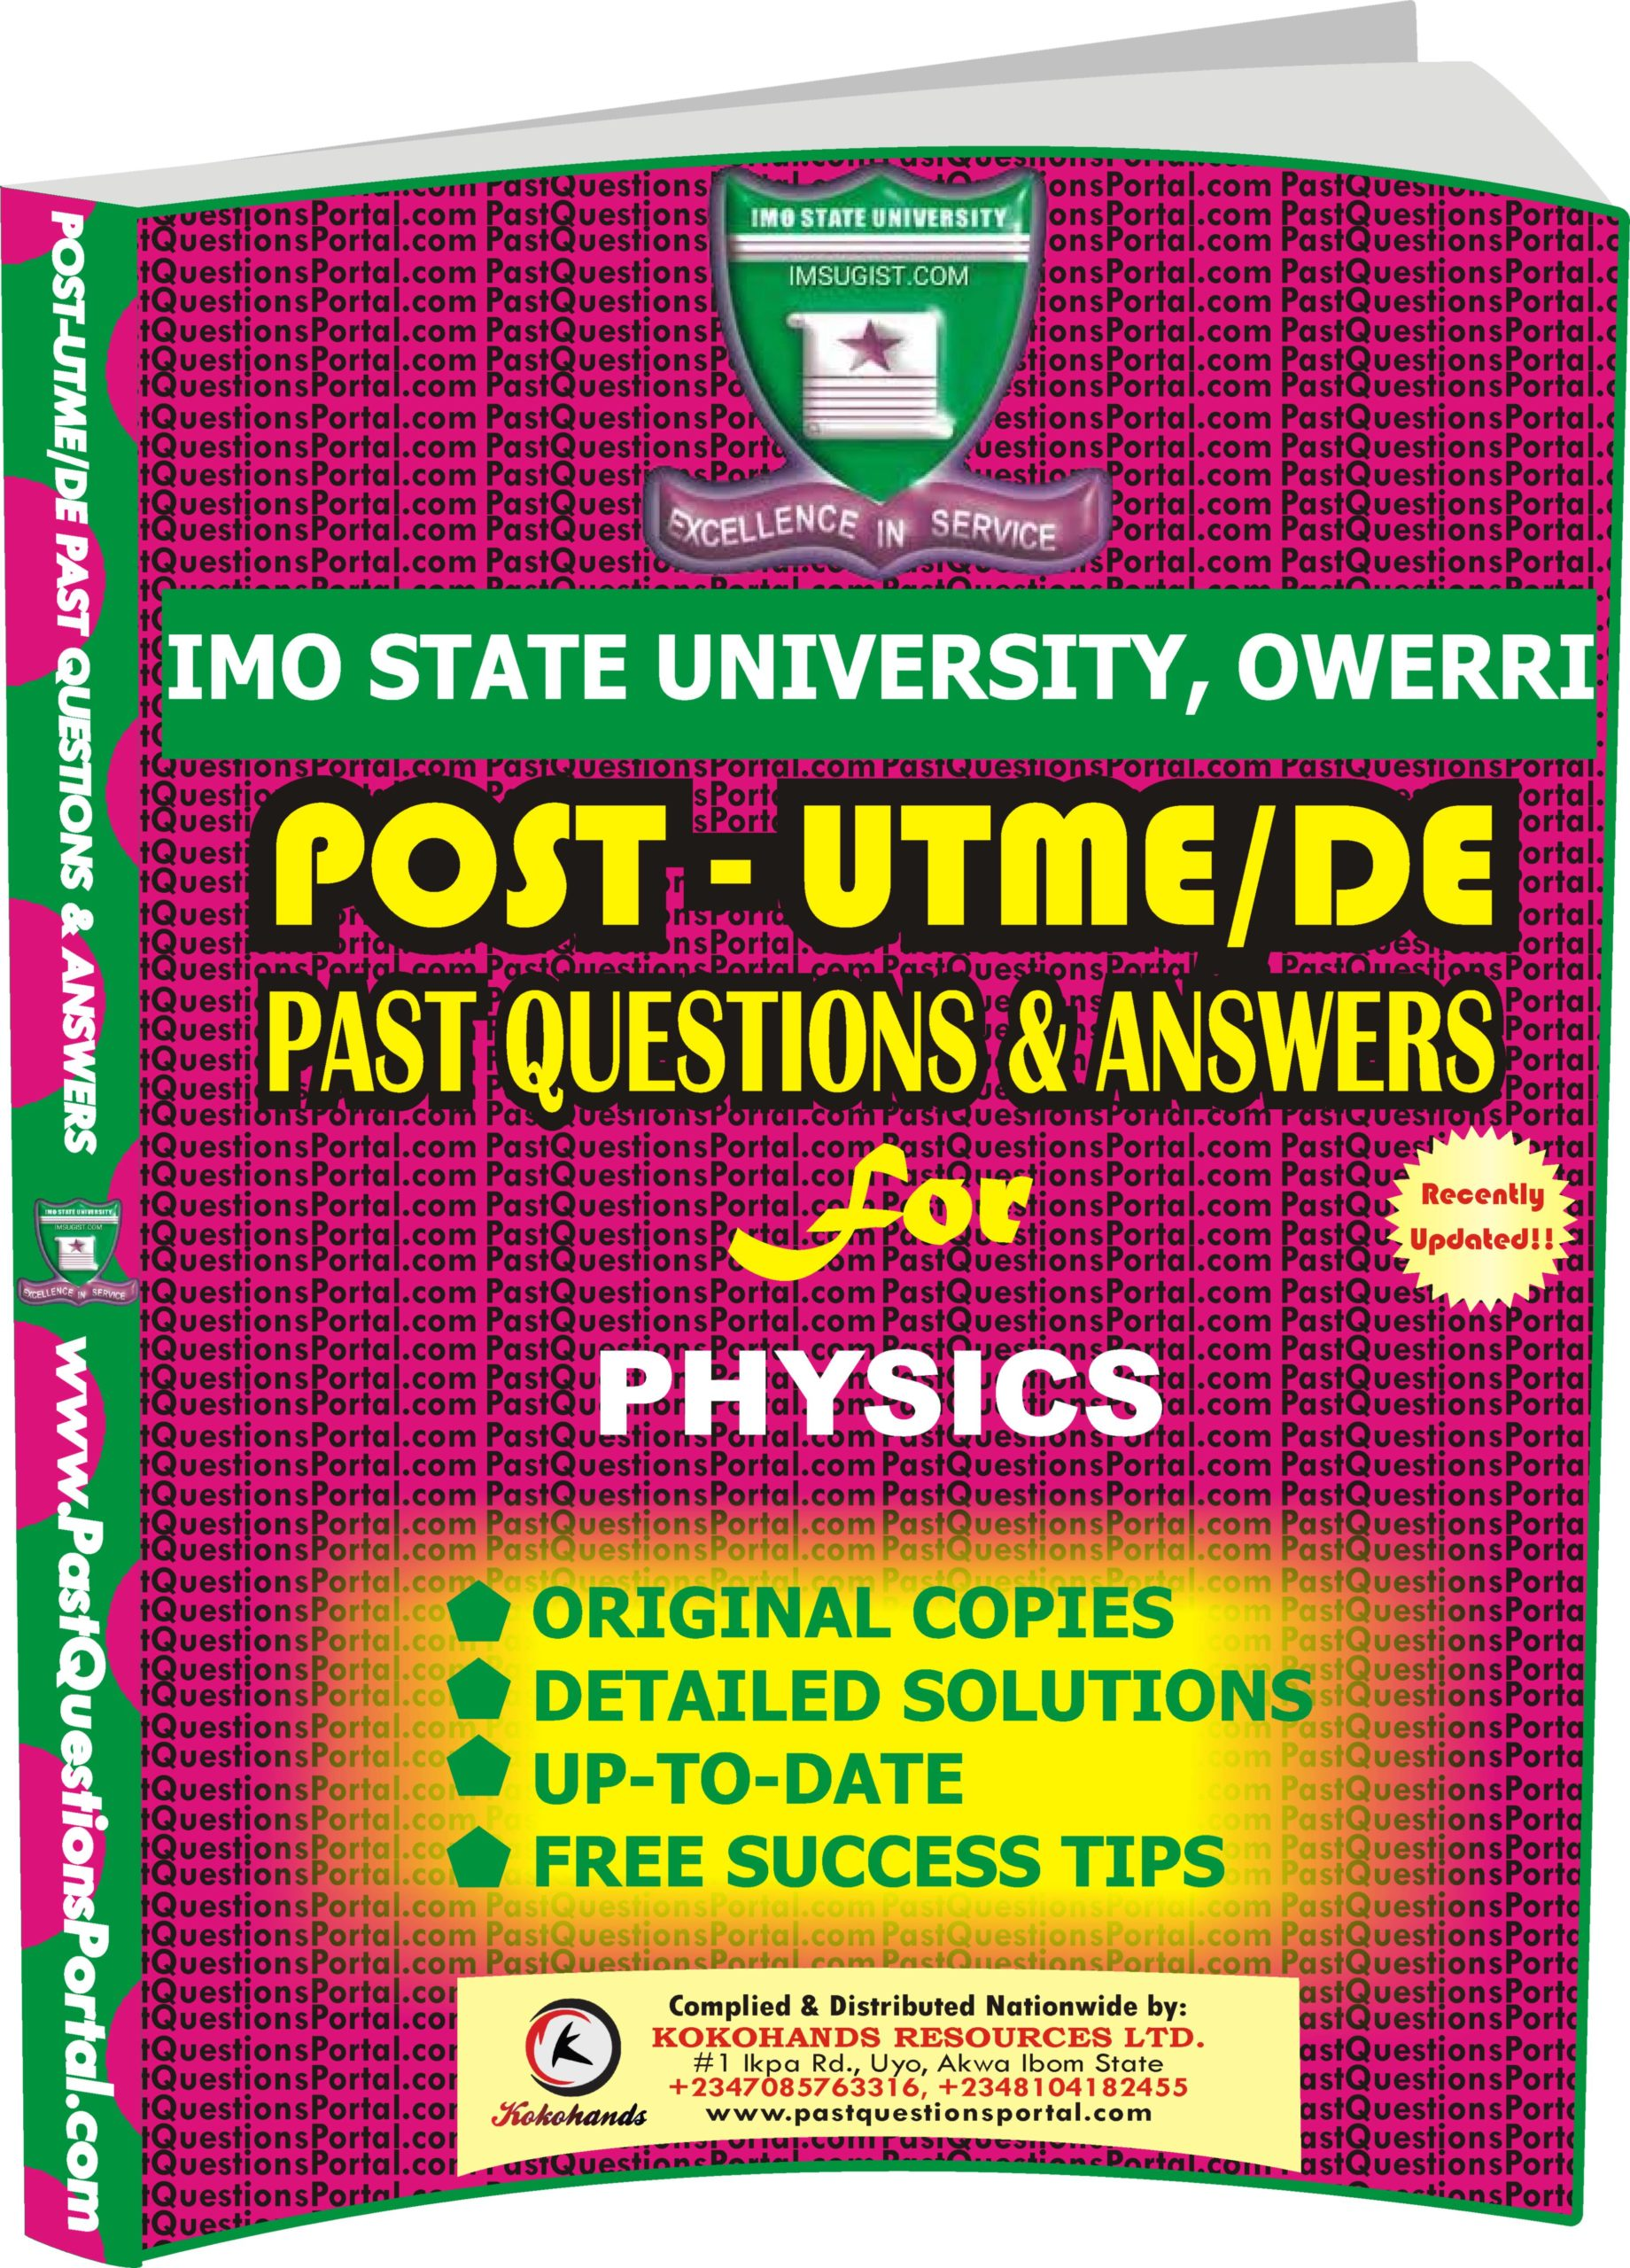 IMSU Post UTME Past Questions for PHYSICS